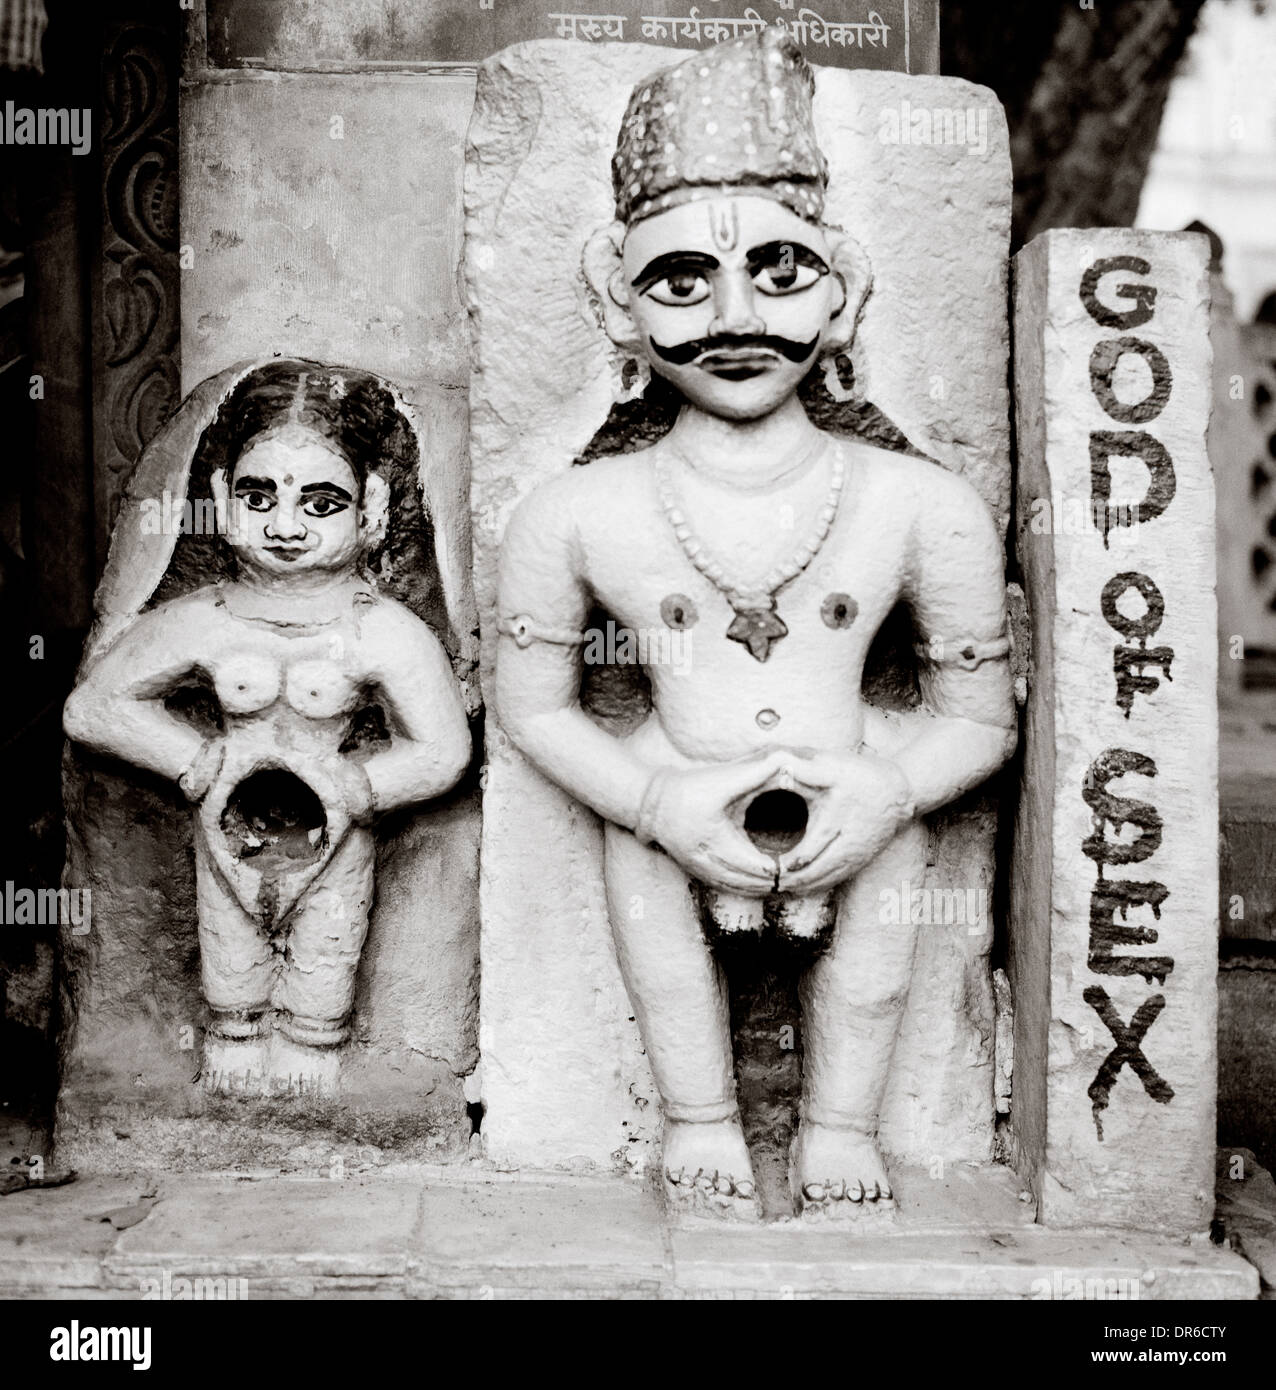 Agree Sex in hindu religion charming message